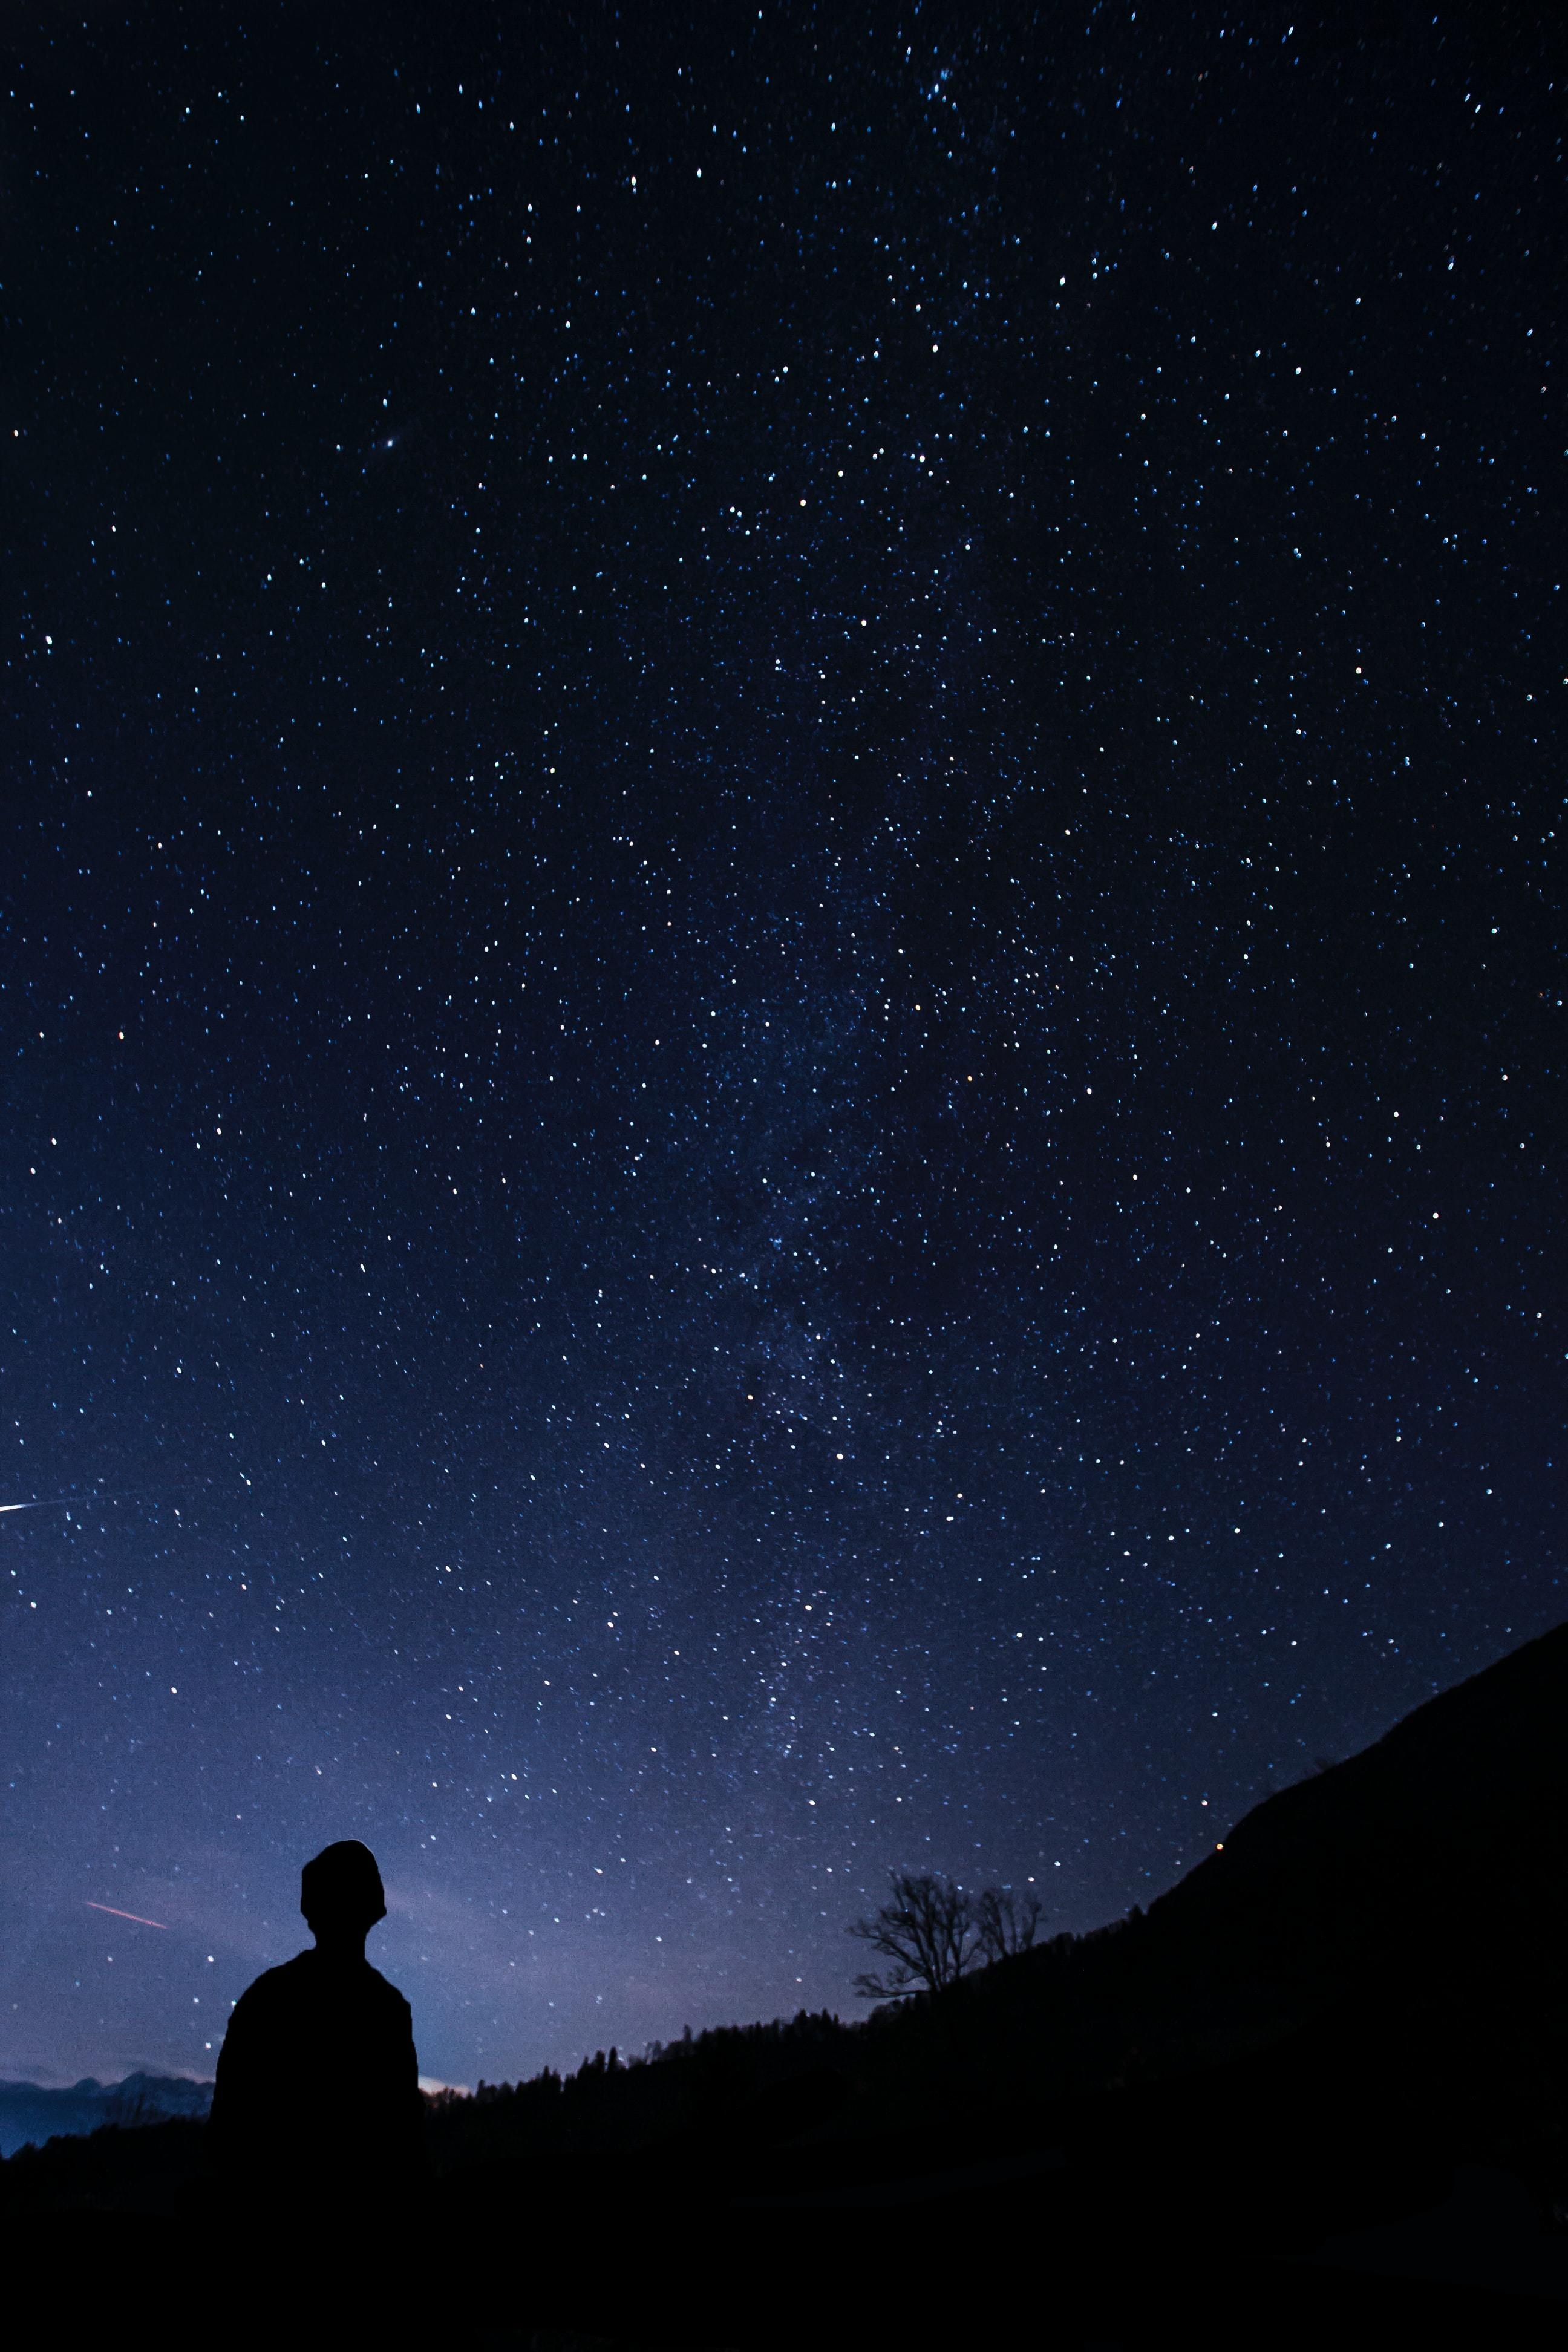 A starlight sky reveals only the silhoutte of a person looking up at the night sky